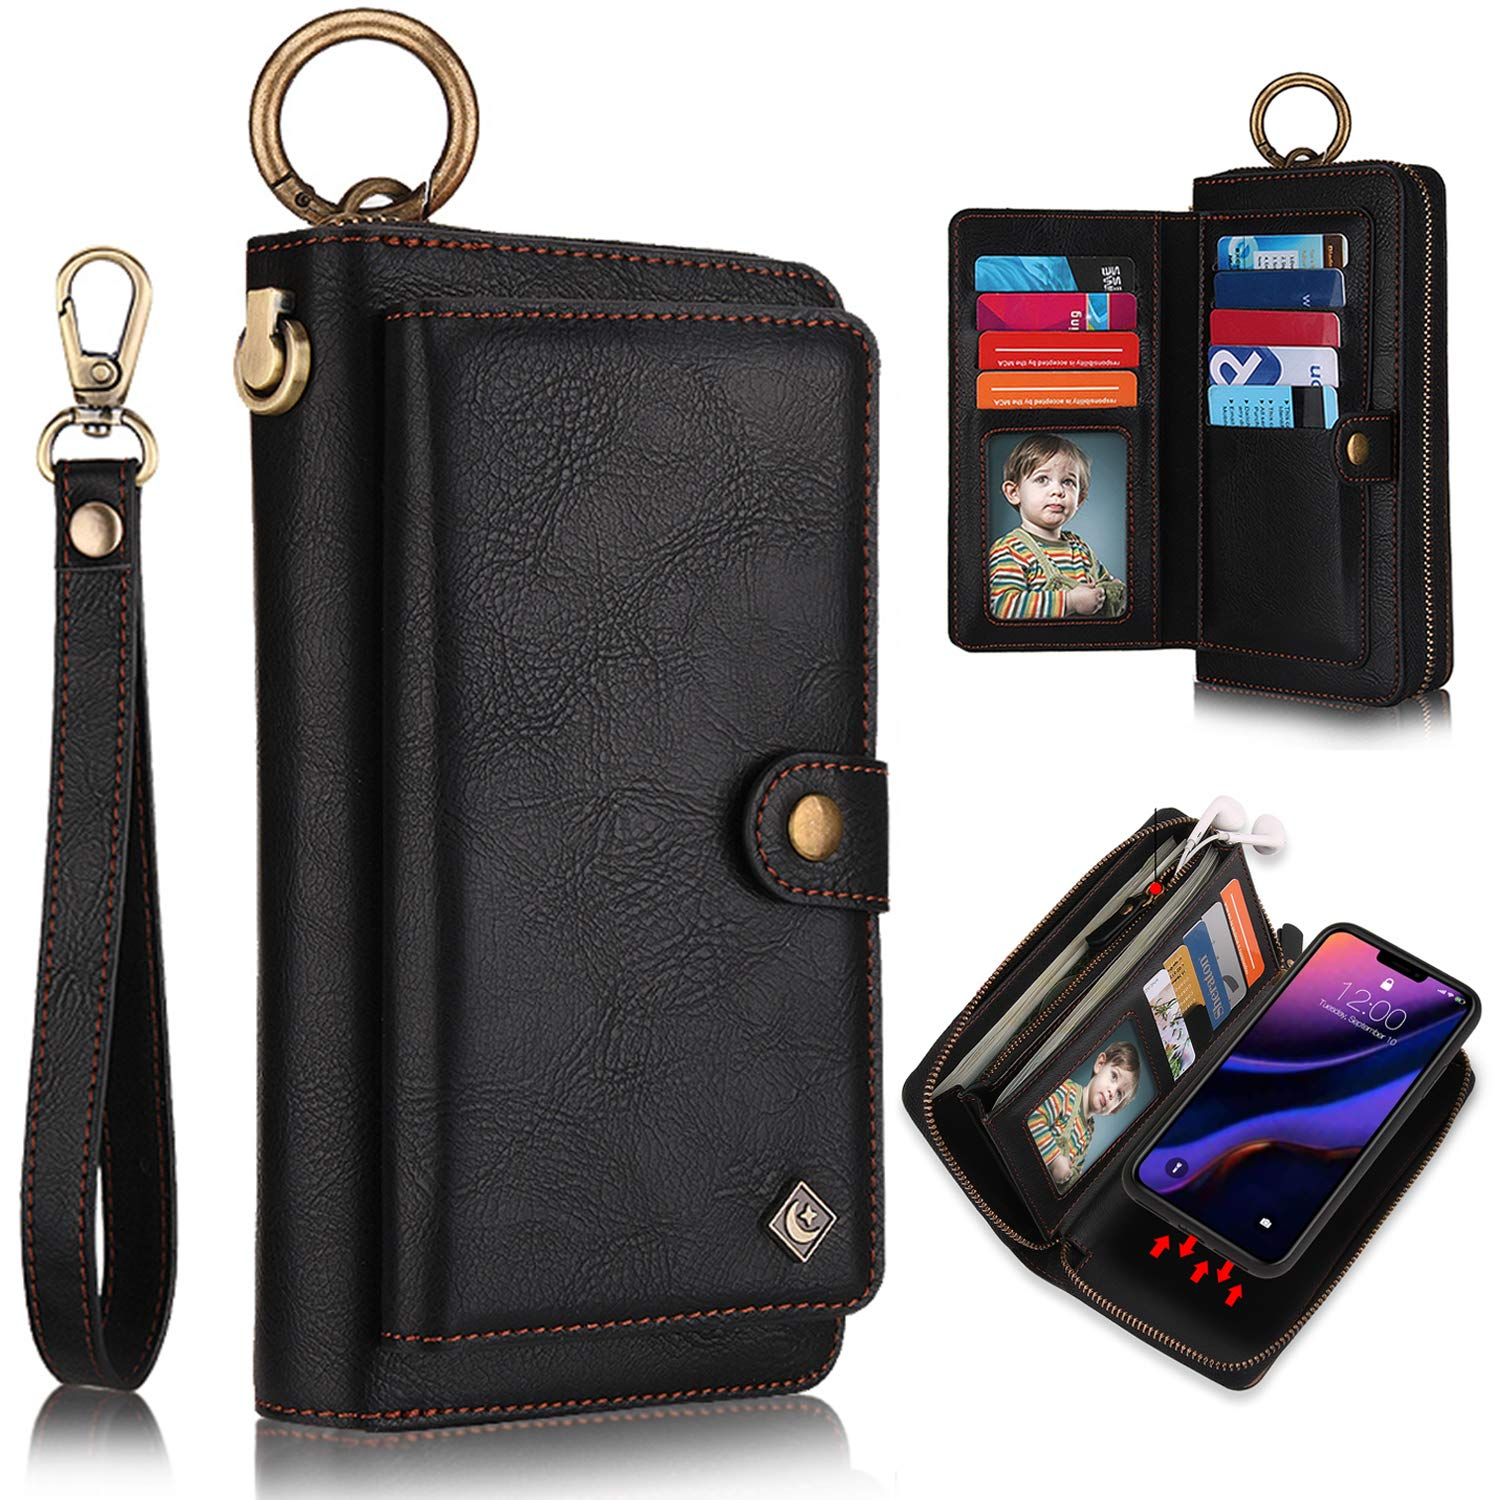 iPhone 11 Pro Case, iPhone 11 Pro Case Wallet, XRPow [2 in 1] [Magnetic Detachable] Zipper Wallet Folio Case [Wrist Strap] Slim Shock Back Cover with Credit Card Purse for iPhone 11Pro 5.8Inch - Black